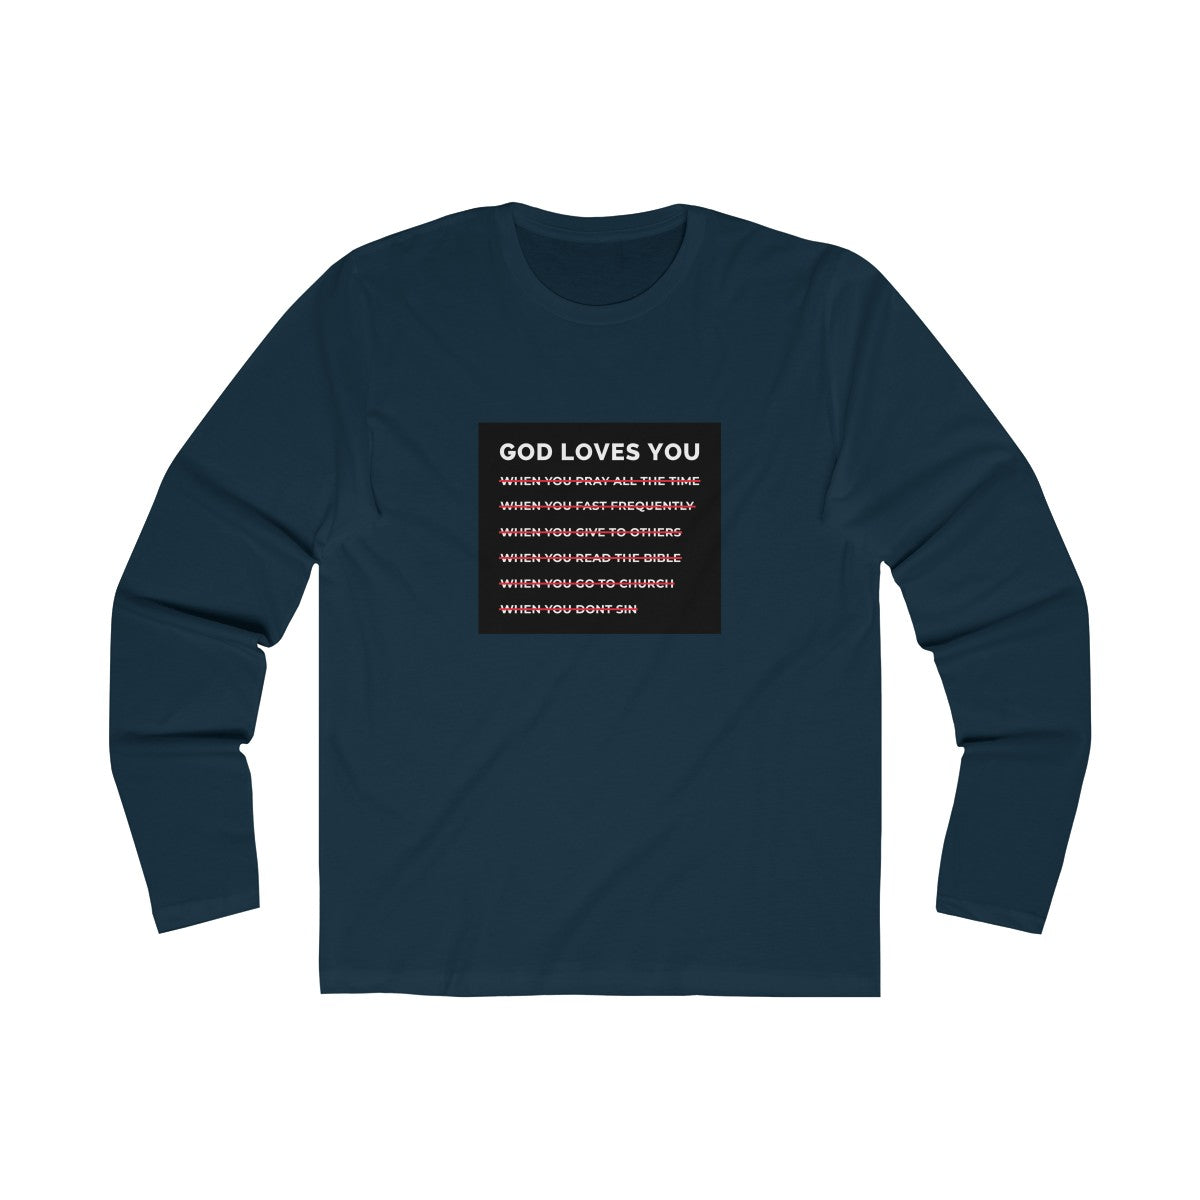 God Loves You Men's Long Sleeve Crew Tee